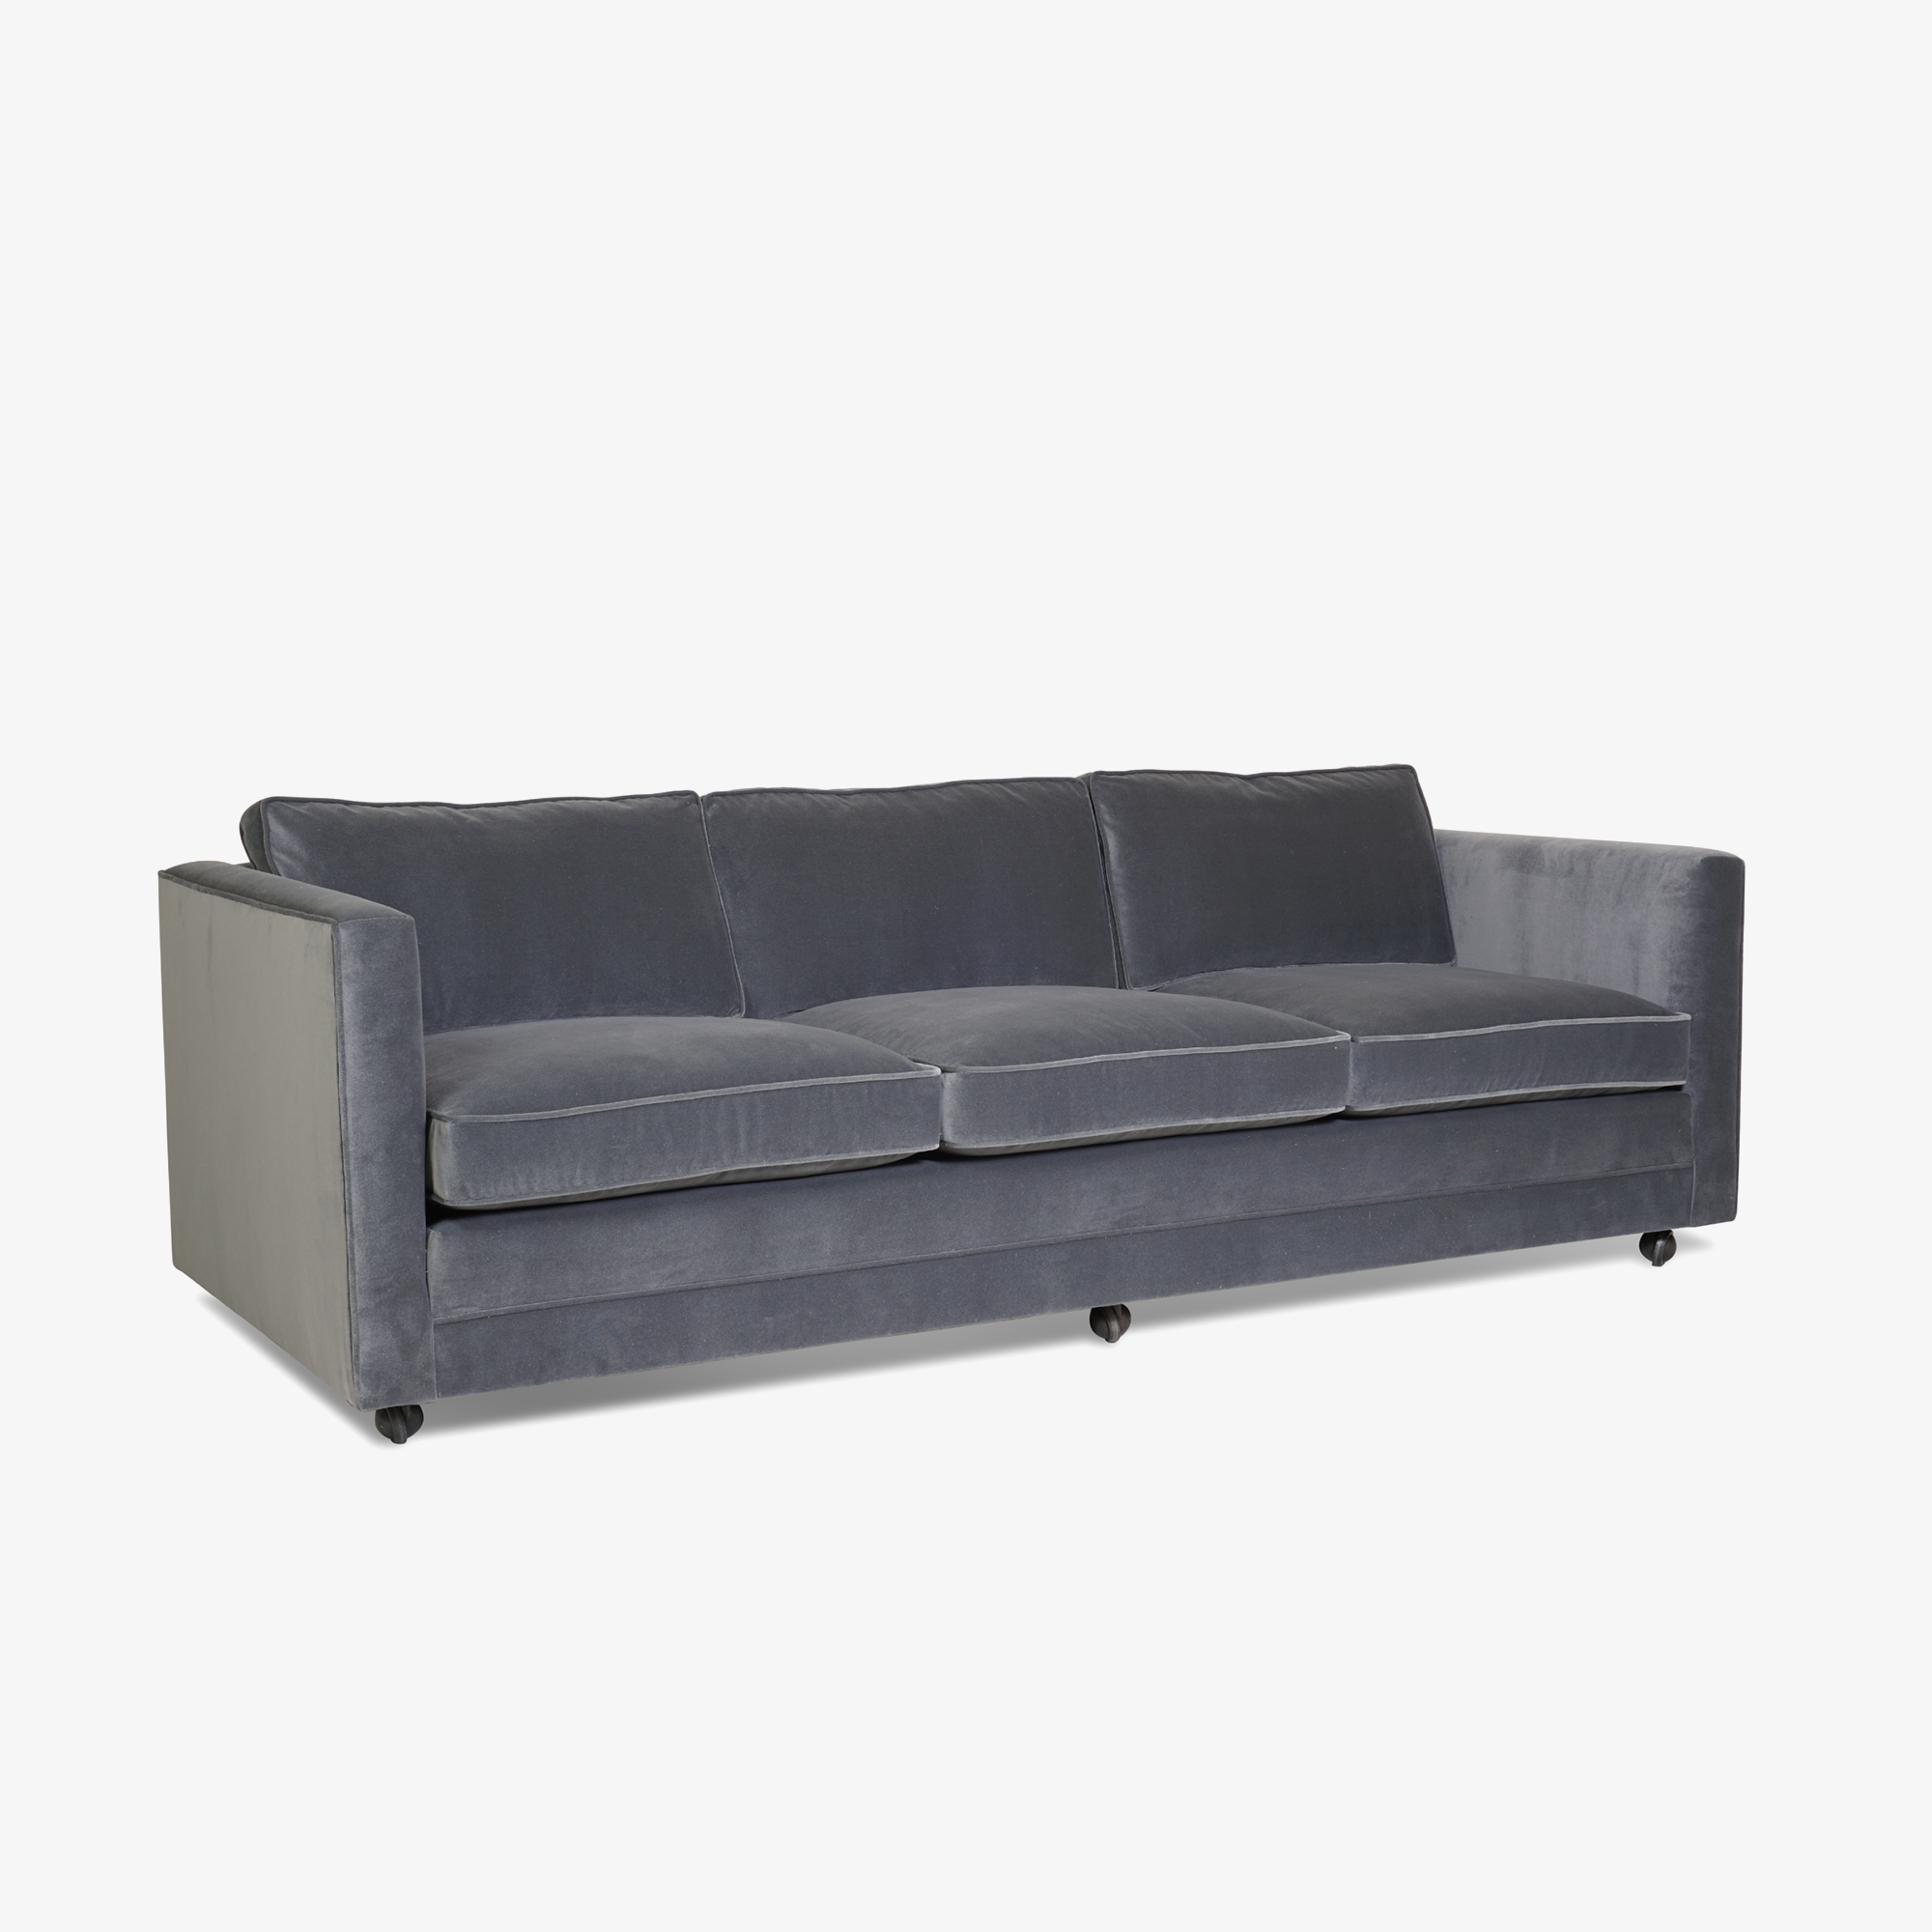 Mid-Century Three Seat Sofa in Grey Performance Velvet2.png